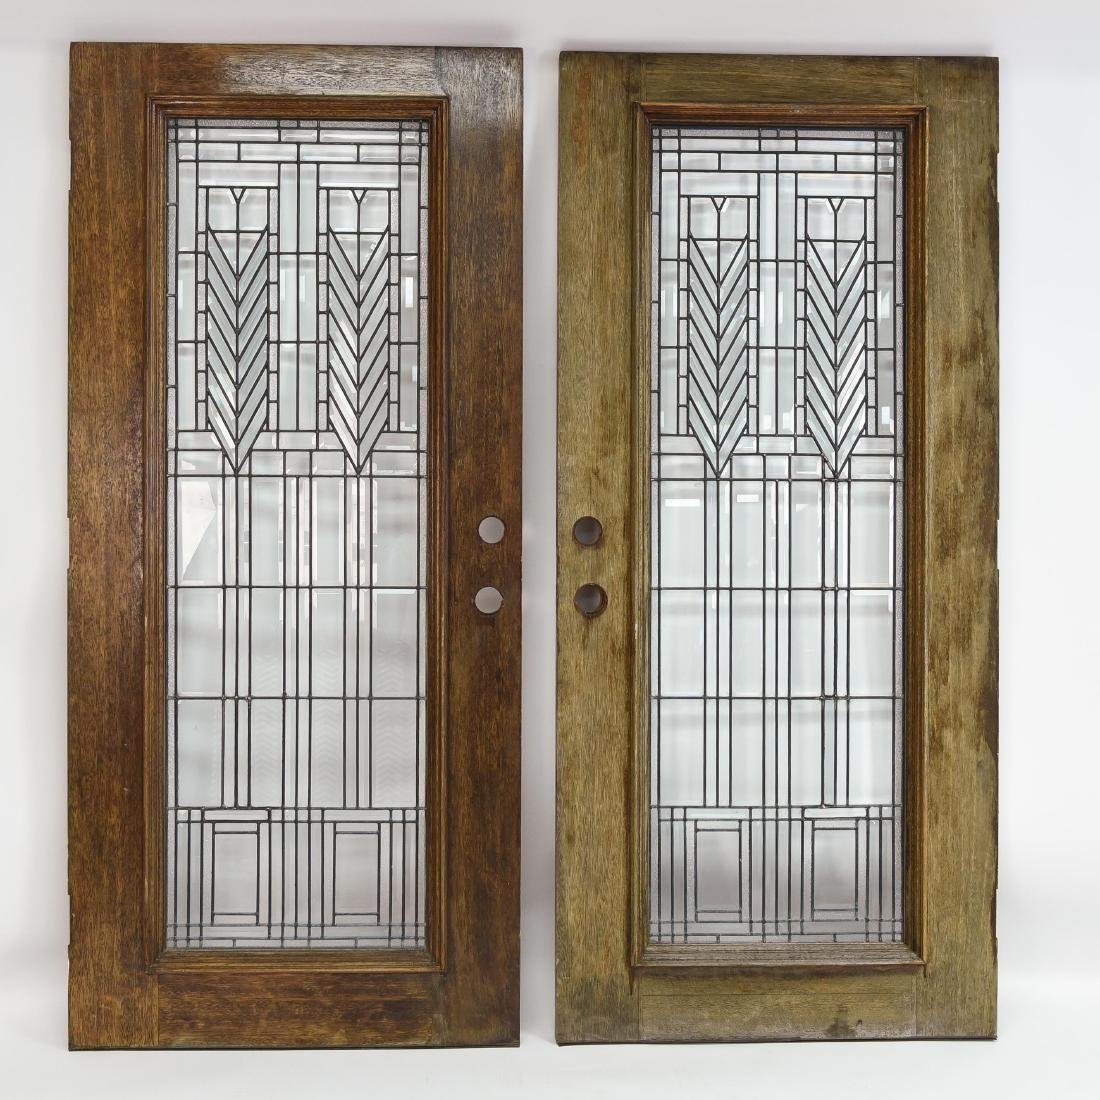 PAIR OF FRANK LLOYD WRIGHT STYLE DOORS